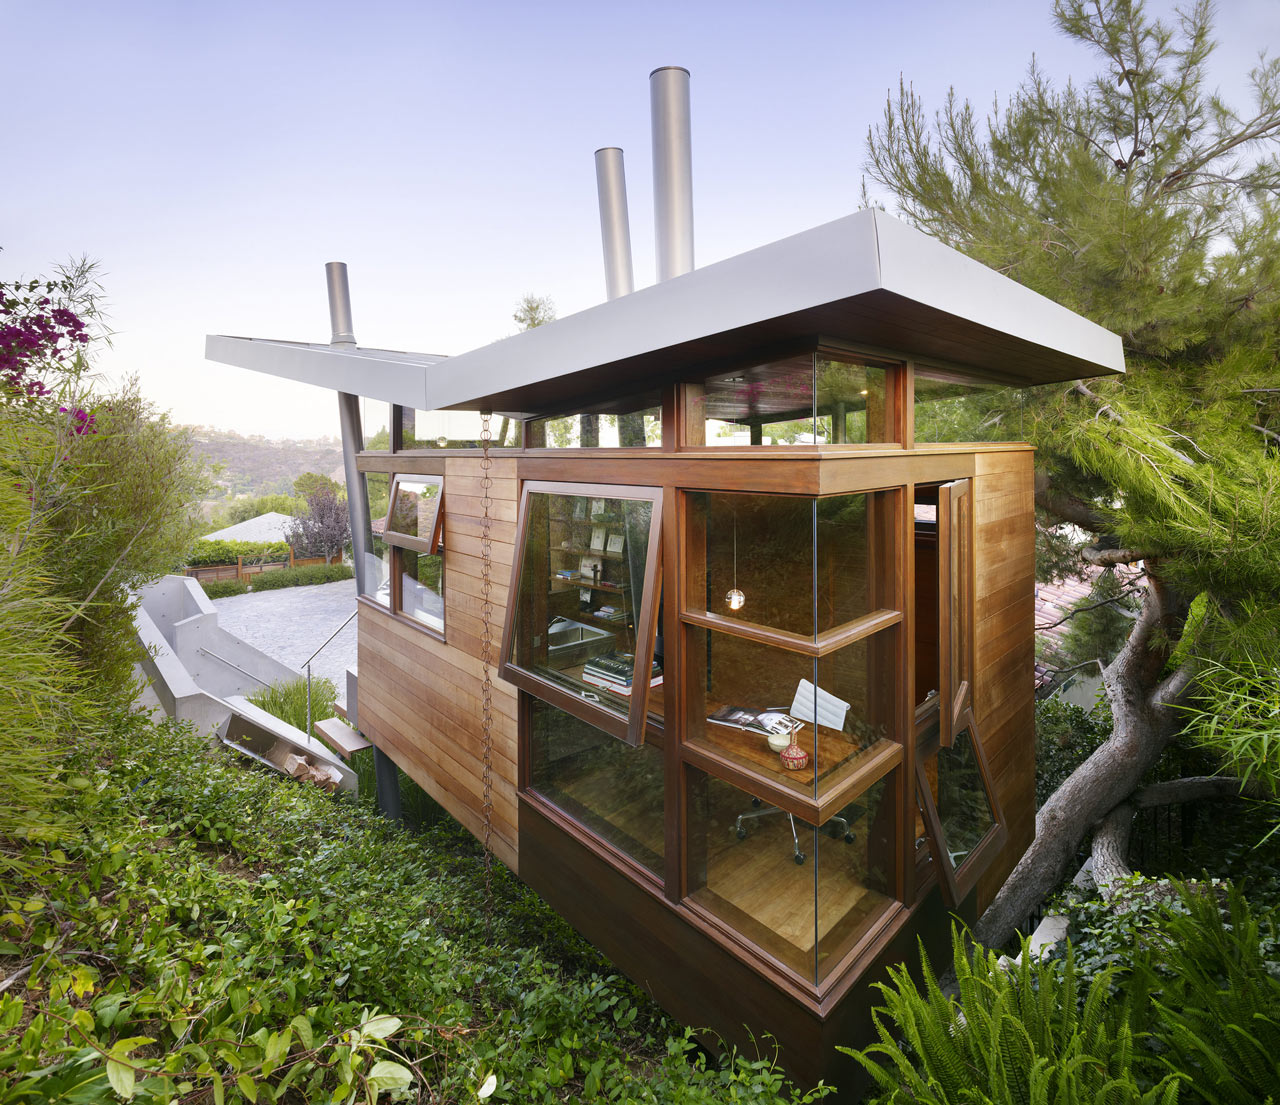 10 Modern Treehouses Wed Love To Have In Our Own Backyard